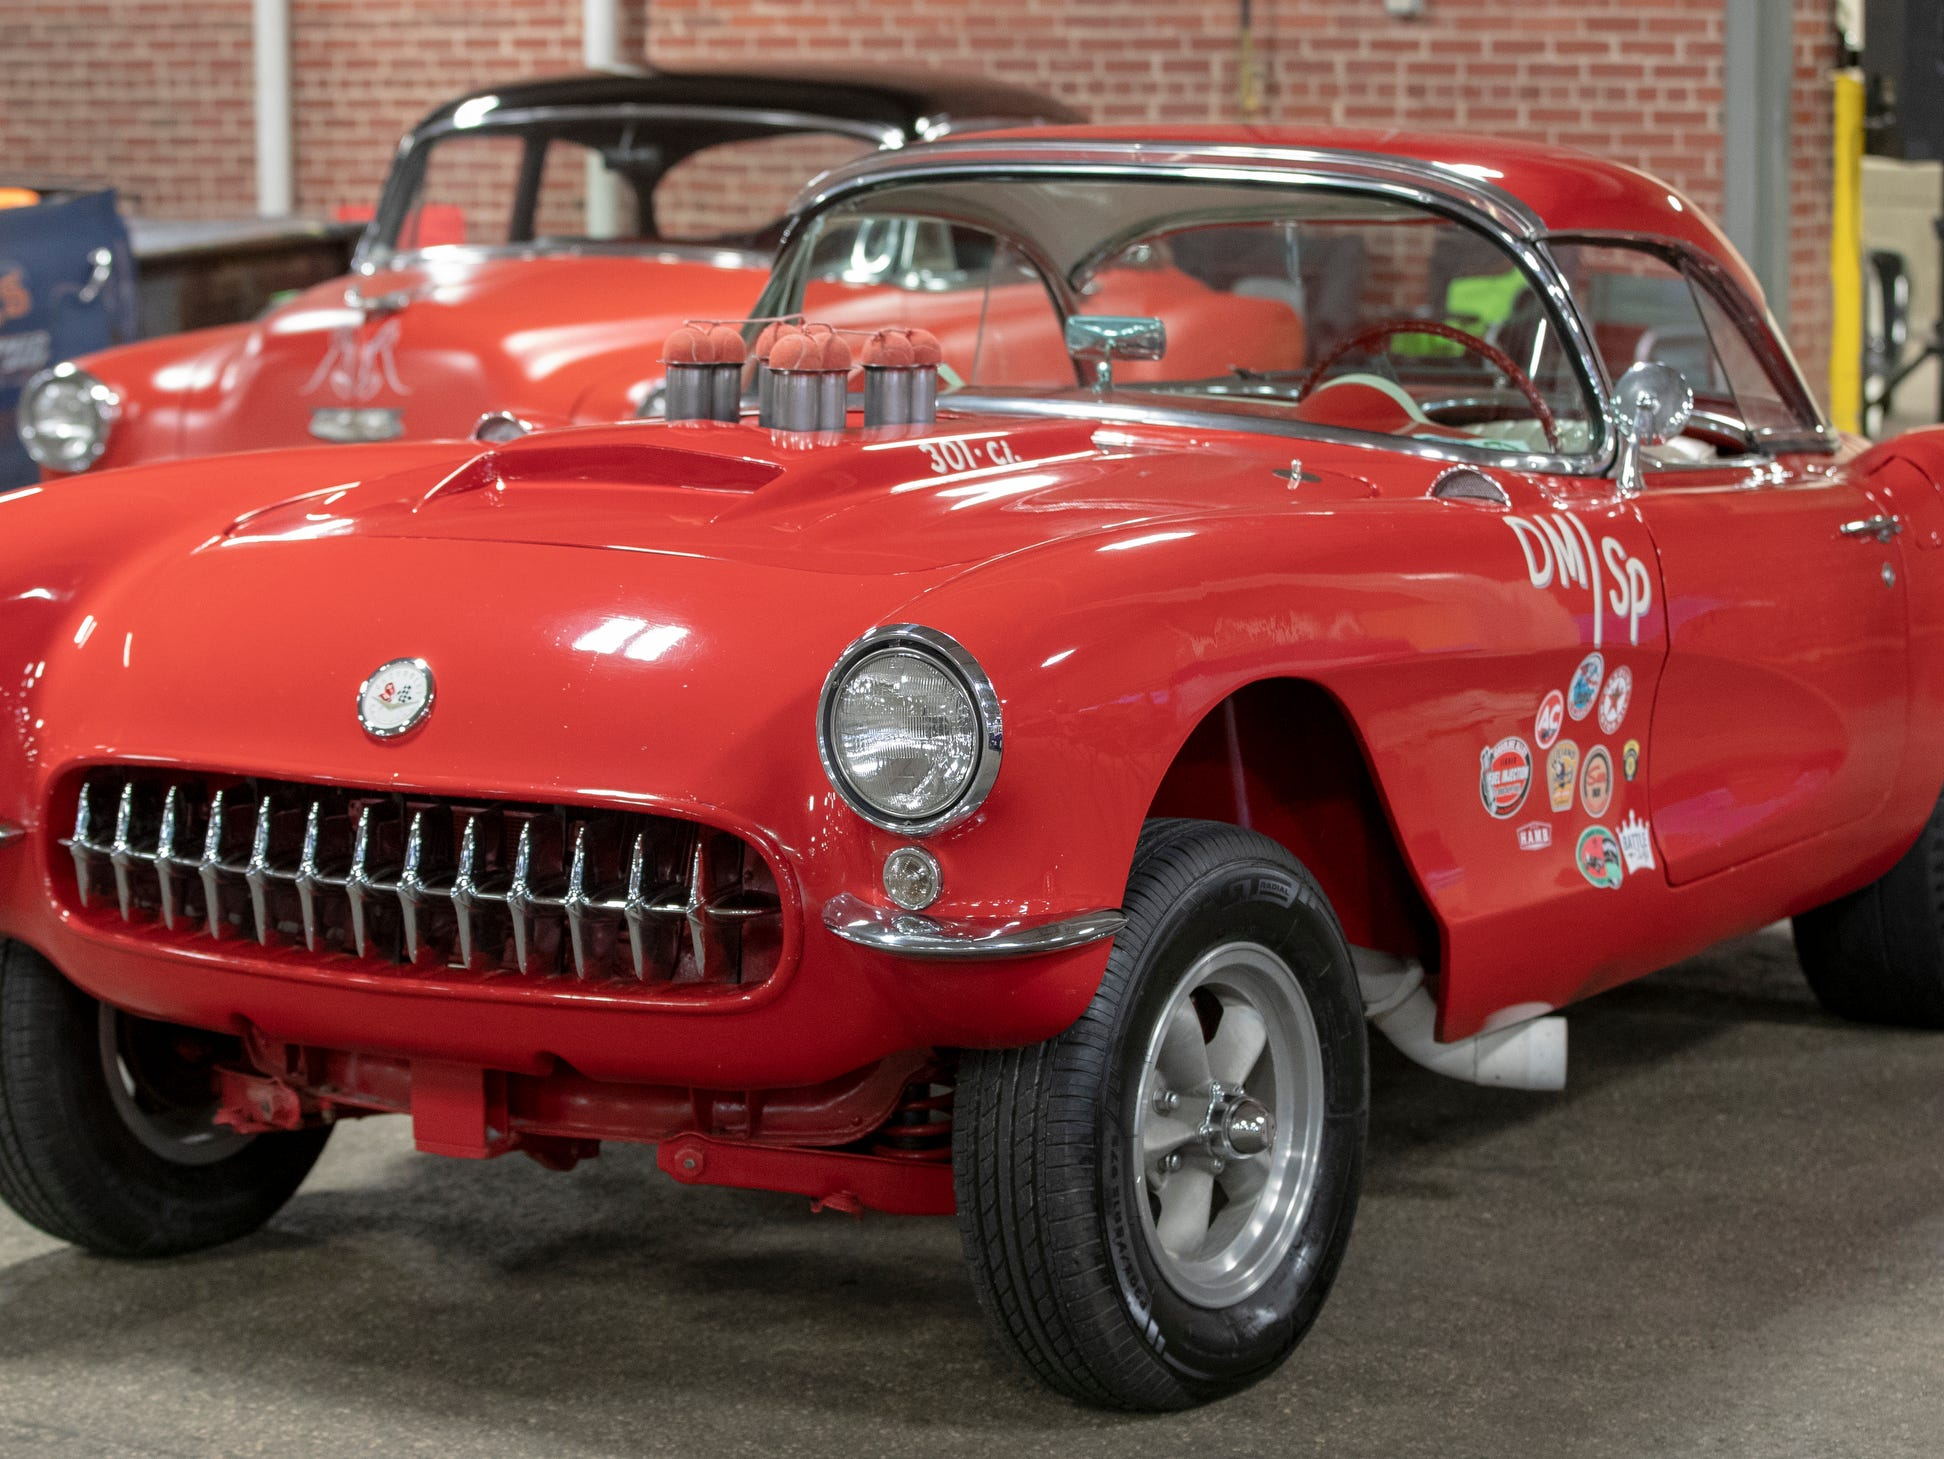 A 1956 Chevy Corvette, at World of Wheels at the Indiana State Fairgrounds, Indianapolis, Friday, Feb. 8, 2019. The event runs through the weekend and features four big rooms of stock and heavily customized cars.